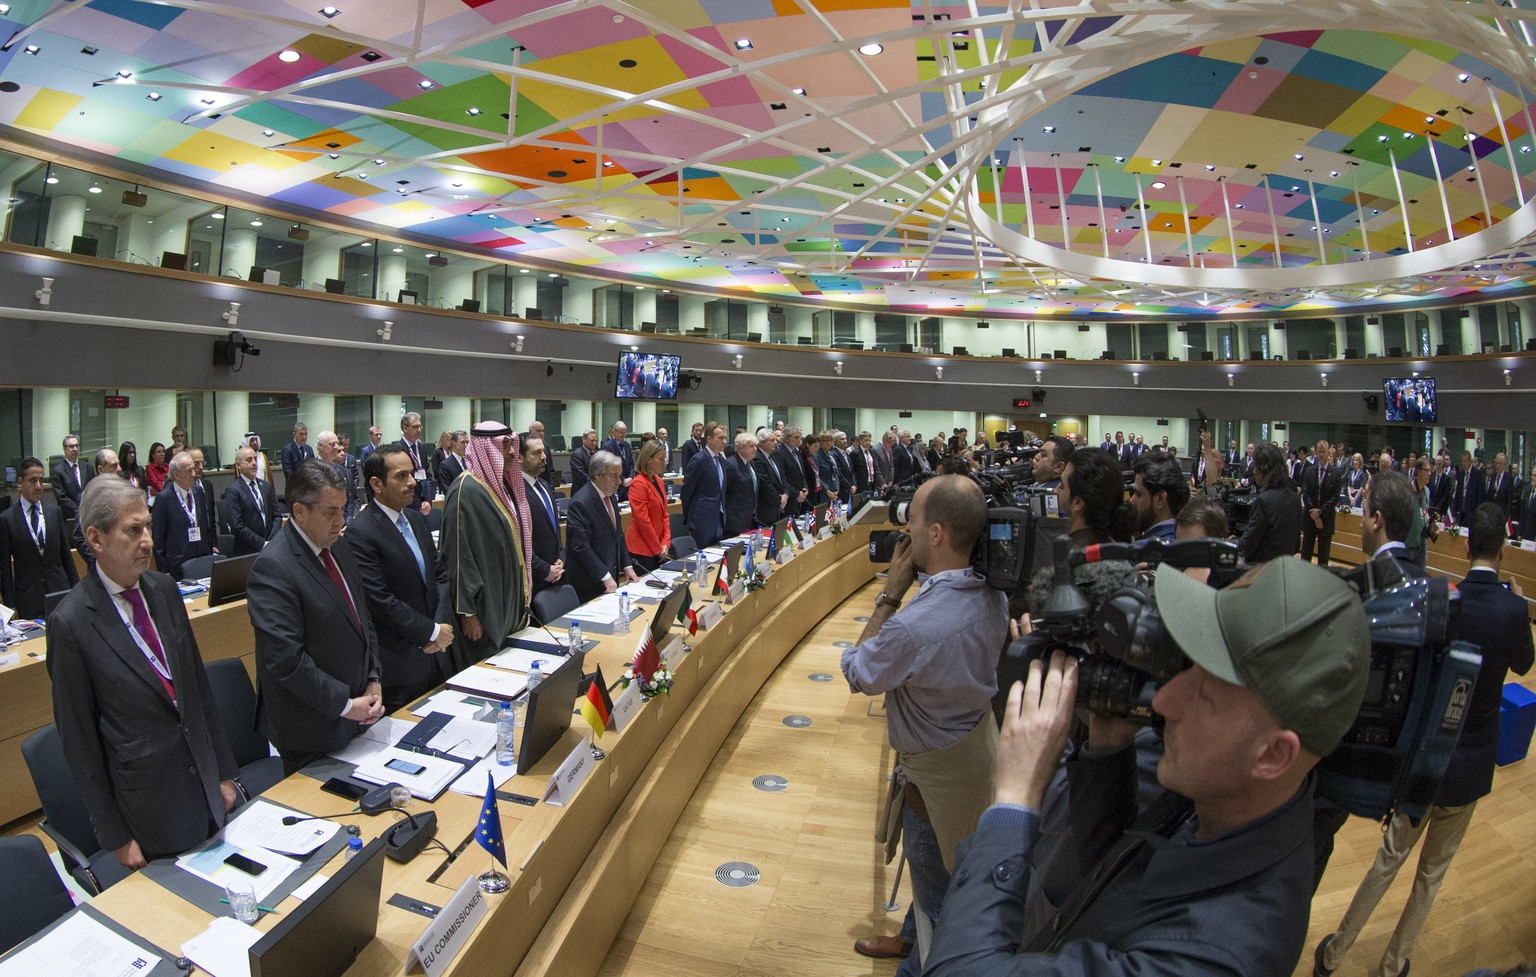 epa05889211 Foreign affairs Ministers and representatives hold a minute of silence at the start of 'supporting the future of Syria and the region Brussels conference' in Brussels, Belgium, 05 April 2017. Supporting the future of Syria is a two-day event, ministerial representatives from 70 delegations, including from the EU and the region but also the wider international community, the United Nations, major donors and civil society, humanitarian and development organisations, the conference will address the situation in Syria and the impact of the crisis in the region.  EPA/OLIVIER HOSLET